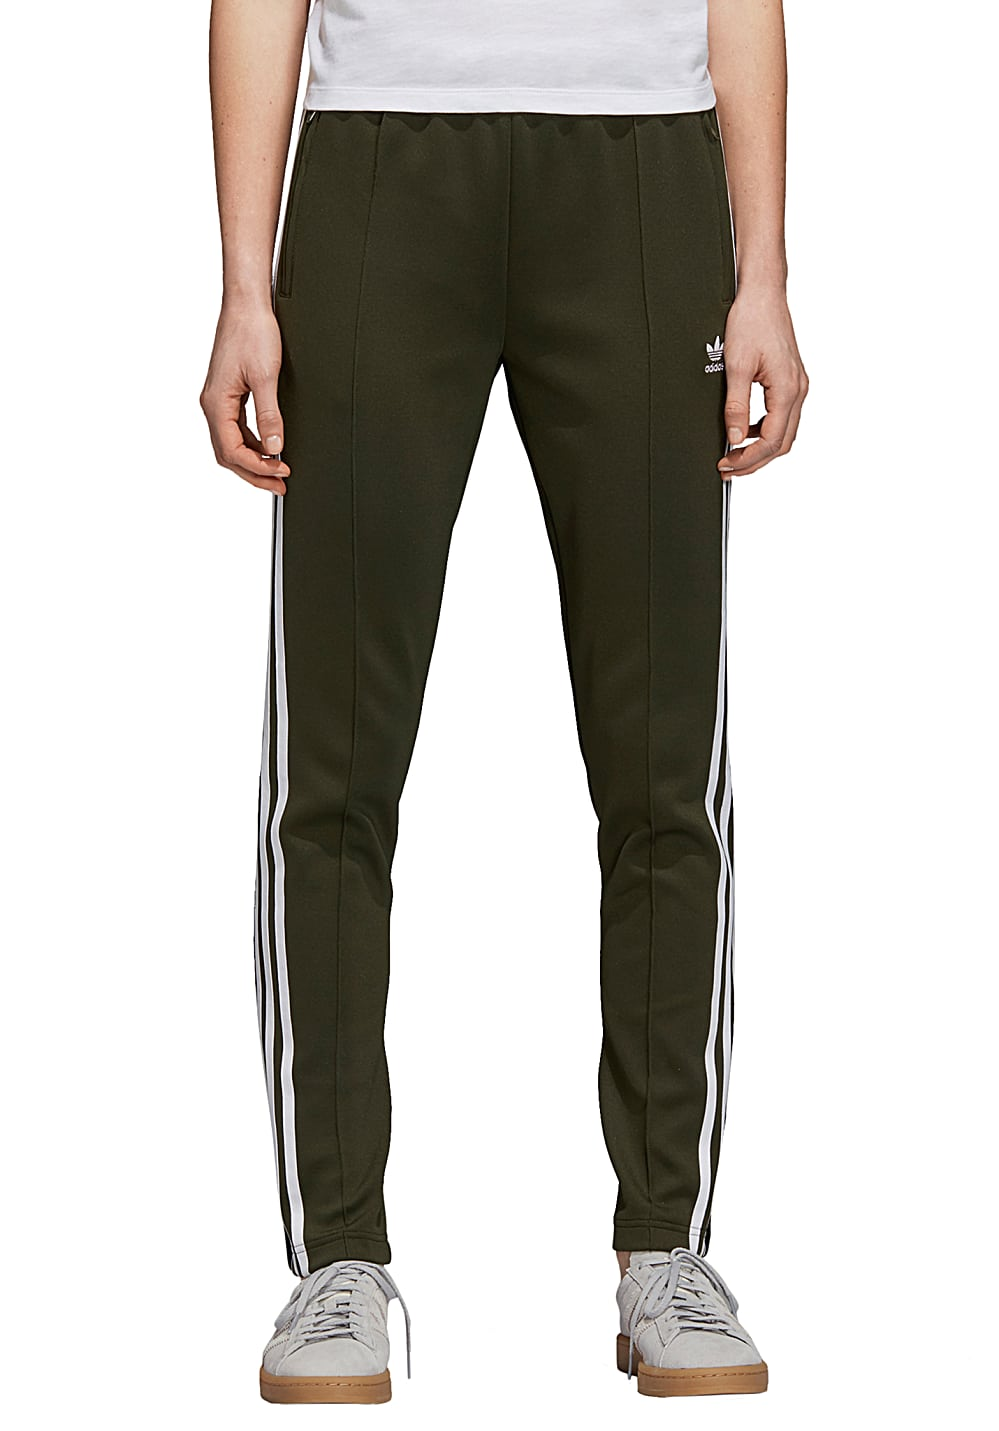 ADIDAS ORIGINALS Sst - Trainingsbroek voor Dames - Groen